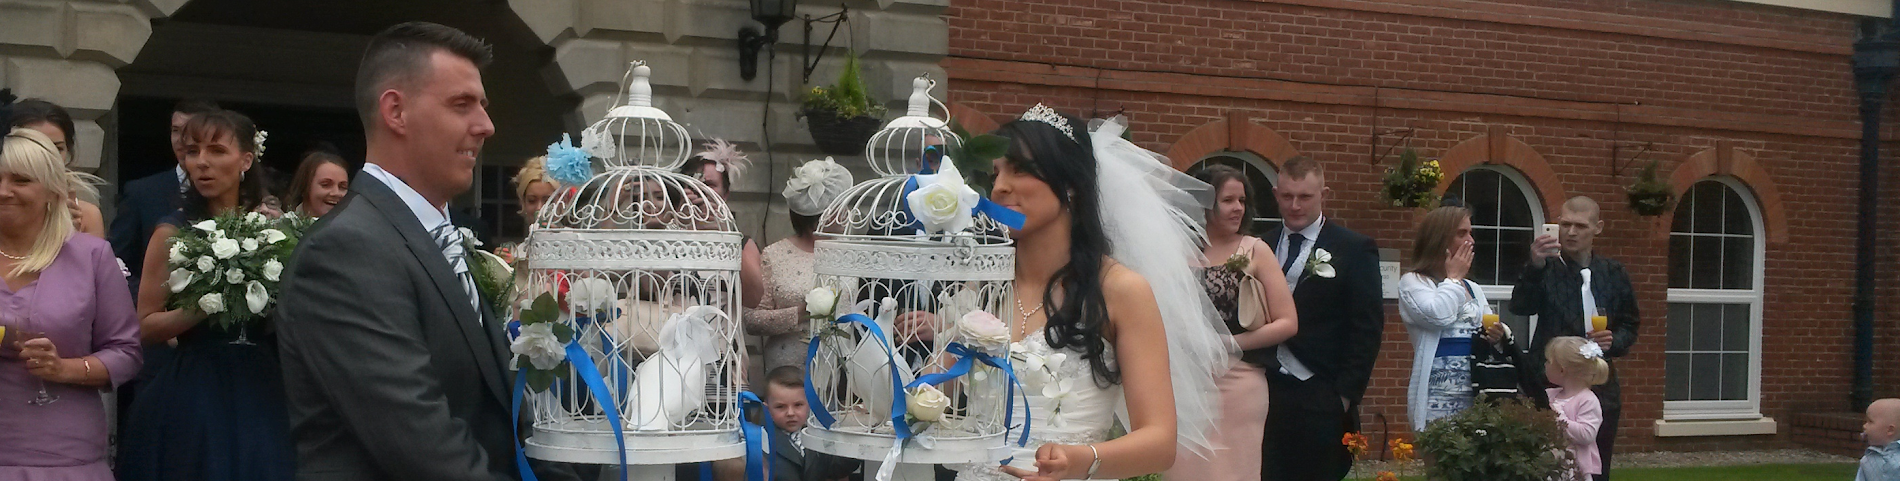 White Dove Release for Weddings in Wigan